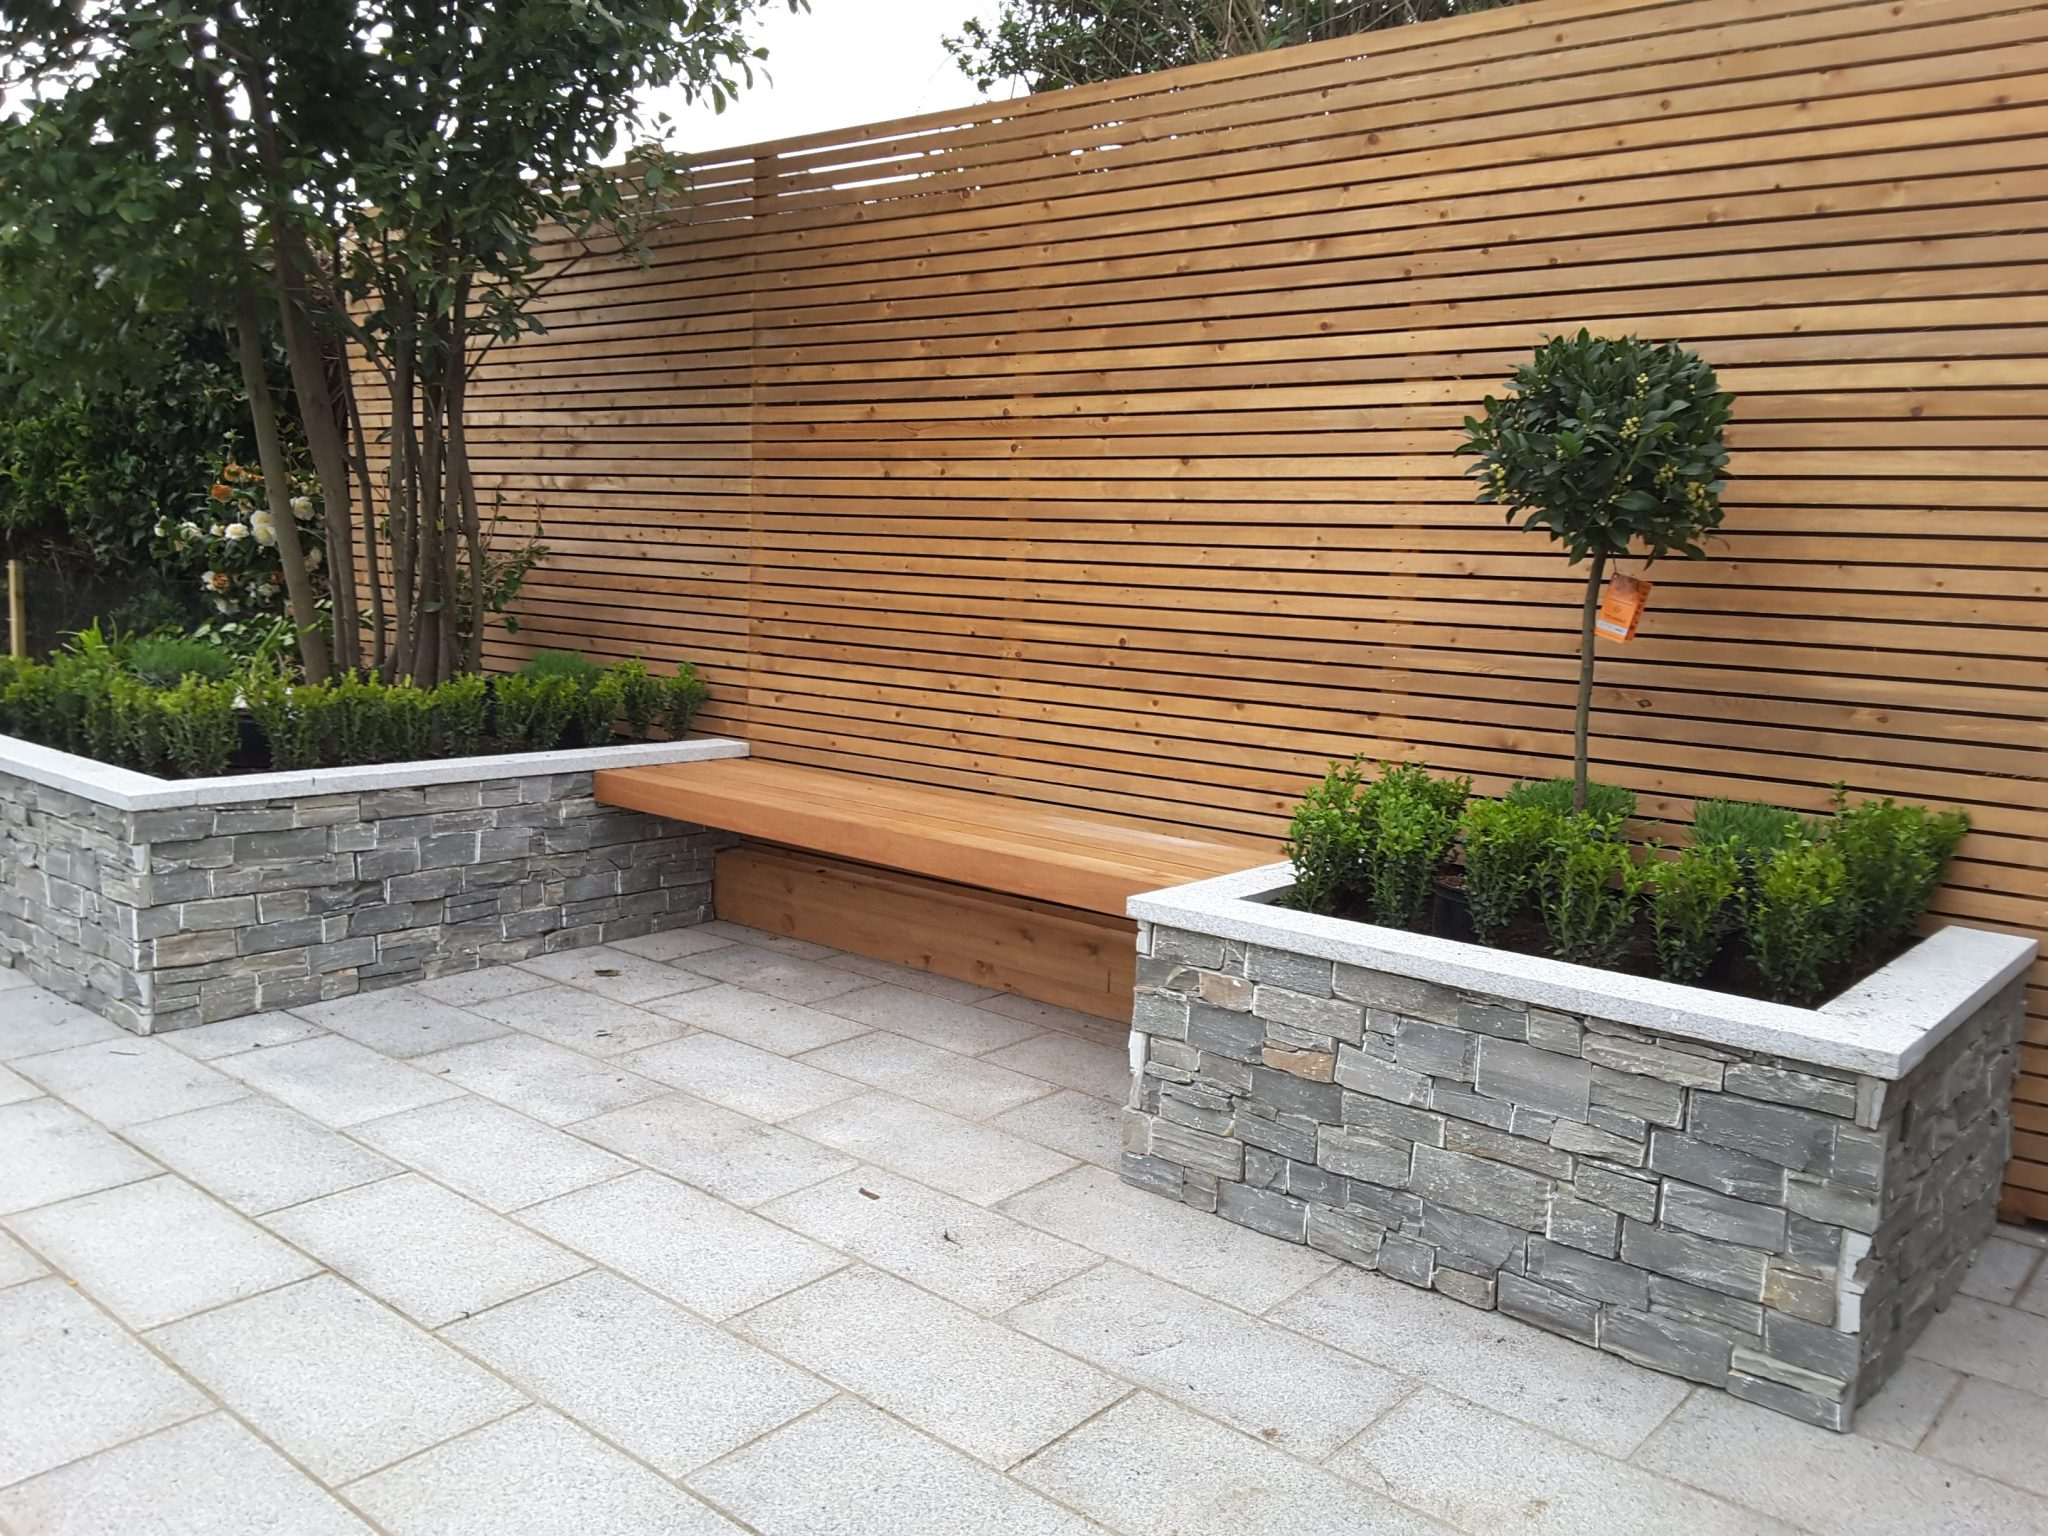 Natural Stone Cladding Walls Stone Wall Cladding